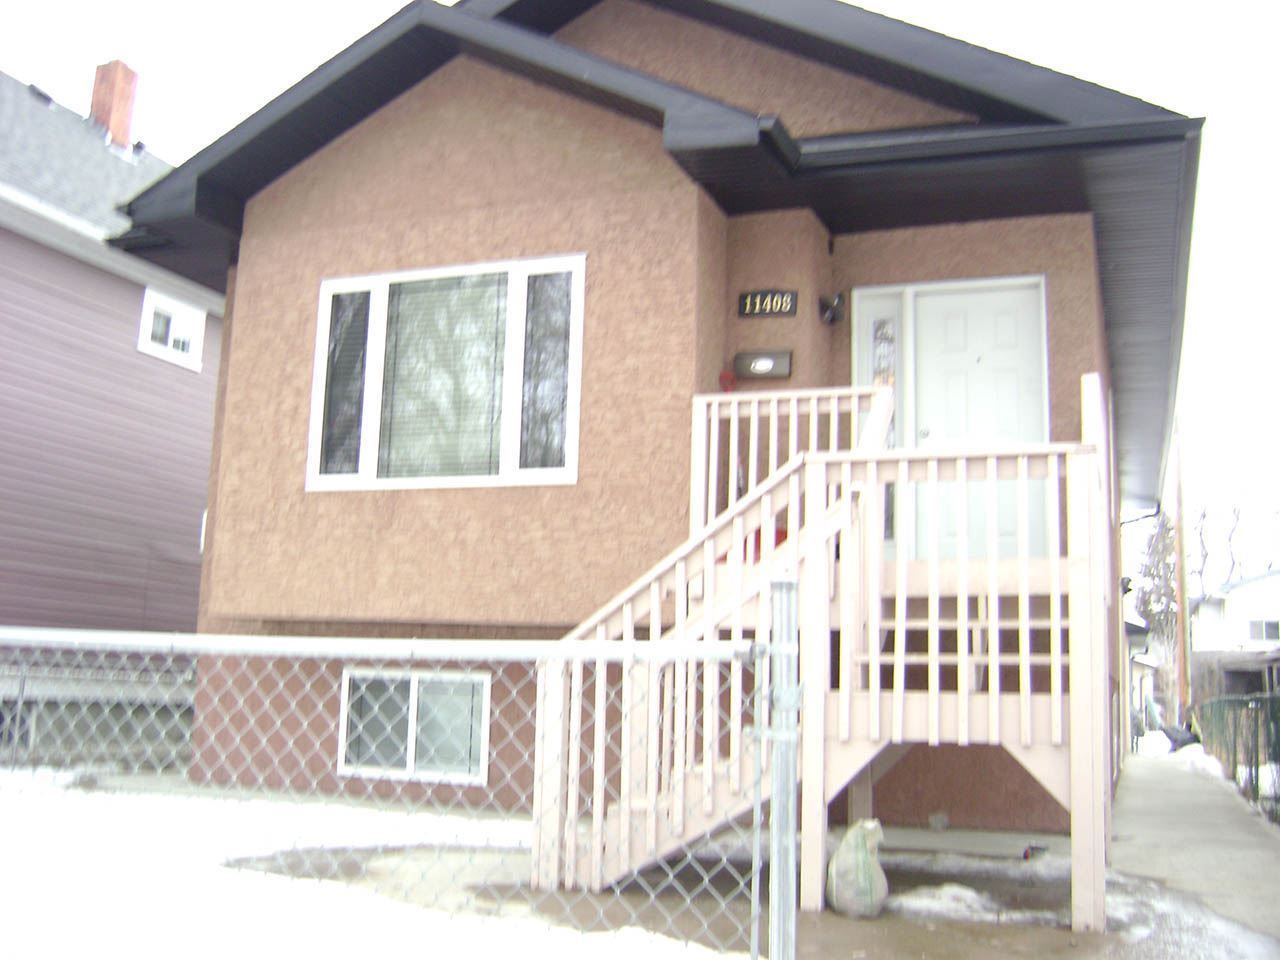 Main Photo: 11408 91 Street in Edmonton: Zone 05 House for sale : MLS® # E4082321